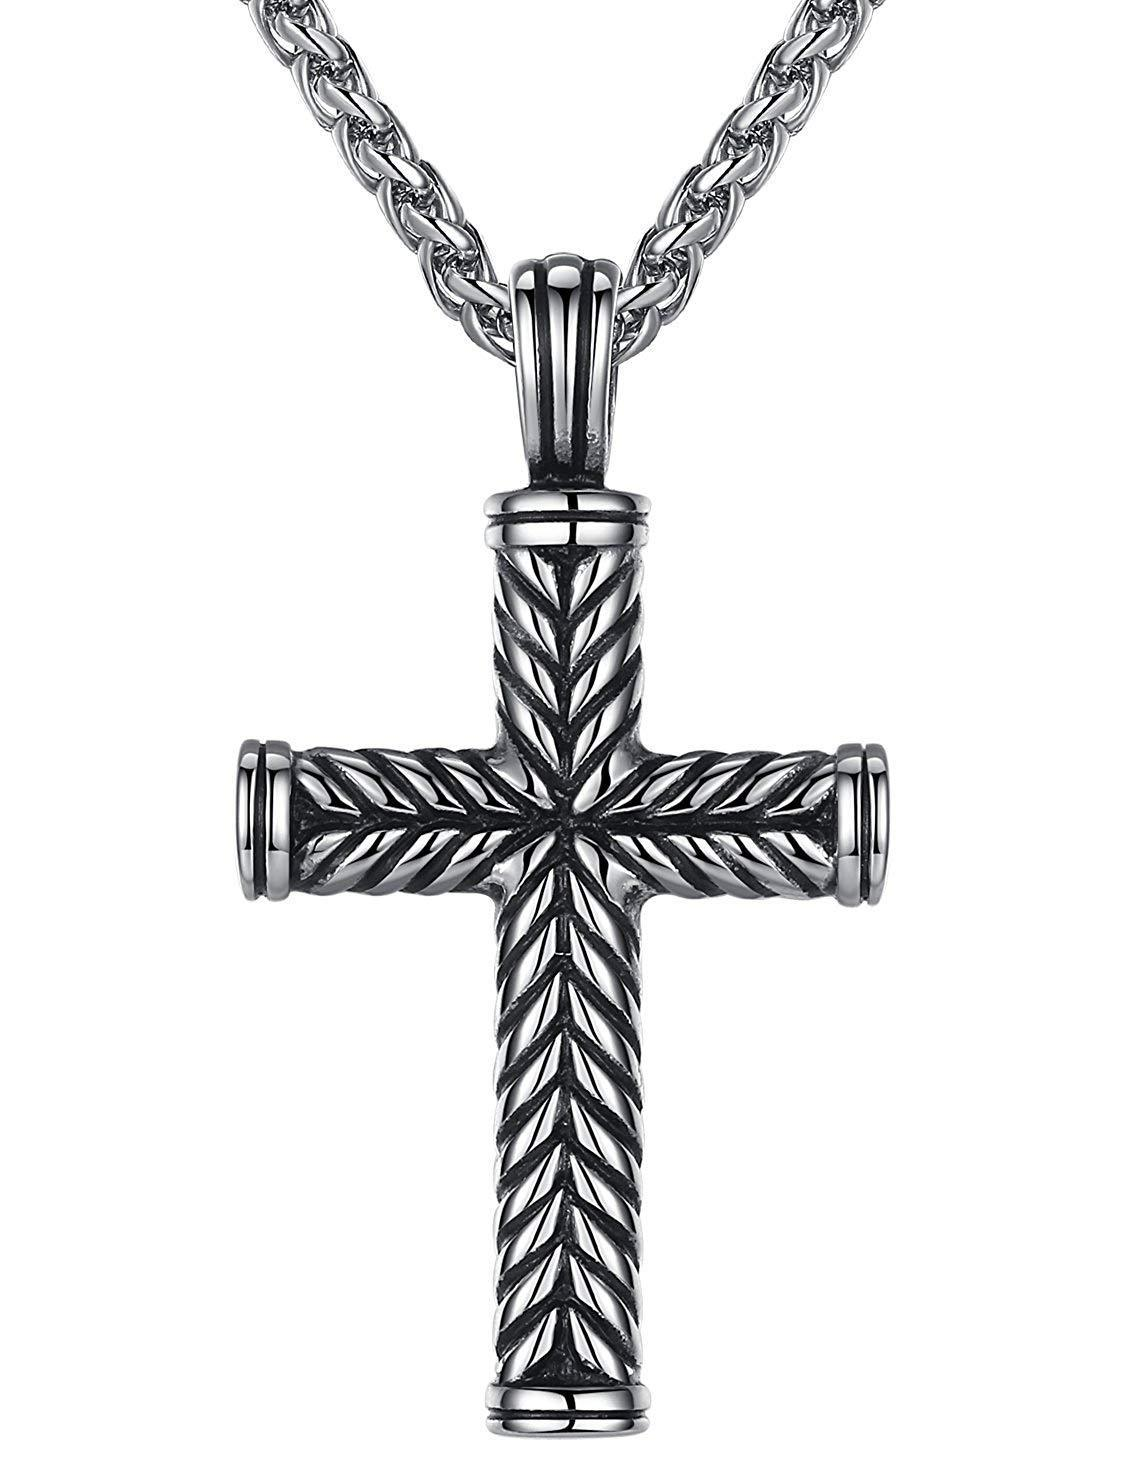 "Aoiy Men's Stainless Steel Religious Large Cross Pendant Necklace, 24"" Link Chain, hhp003yi"